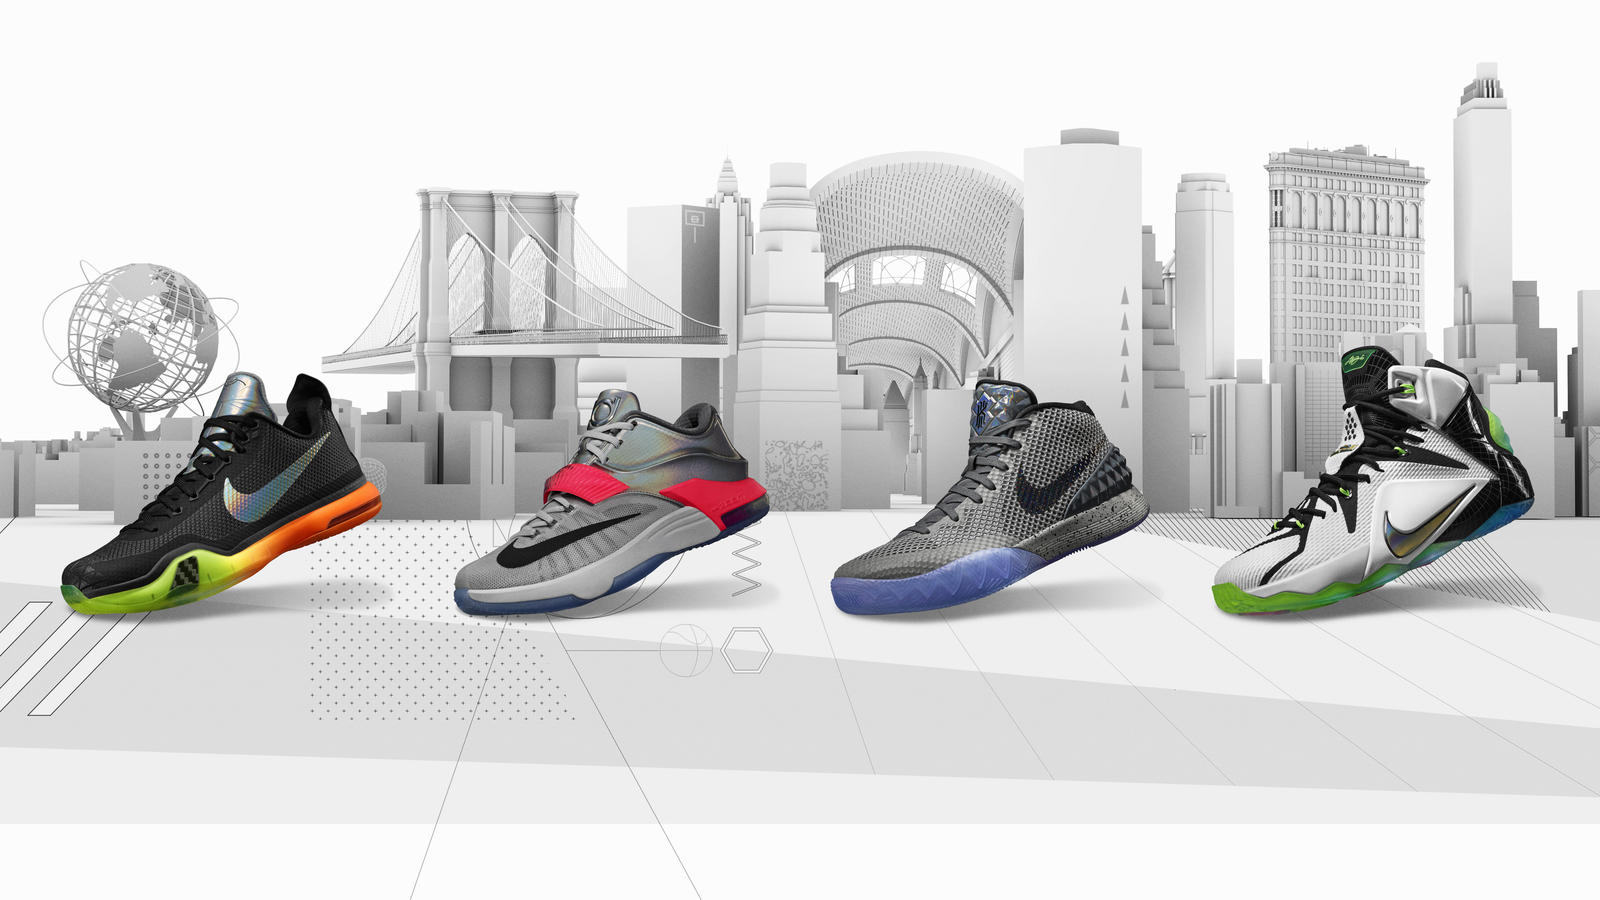 d073d4cdbb179 Nike_Bball_AllStar2015_GROUP_FOUR_hero_FINAL. 2015 Collection honoring All- Star ...